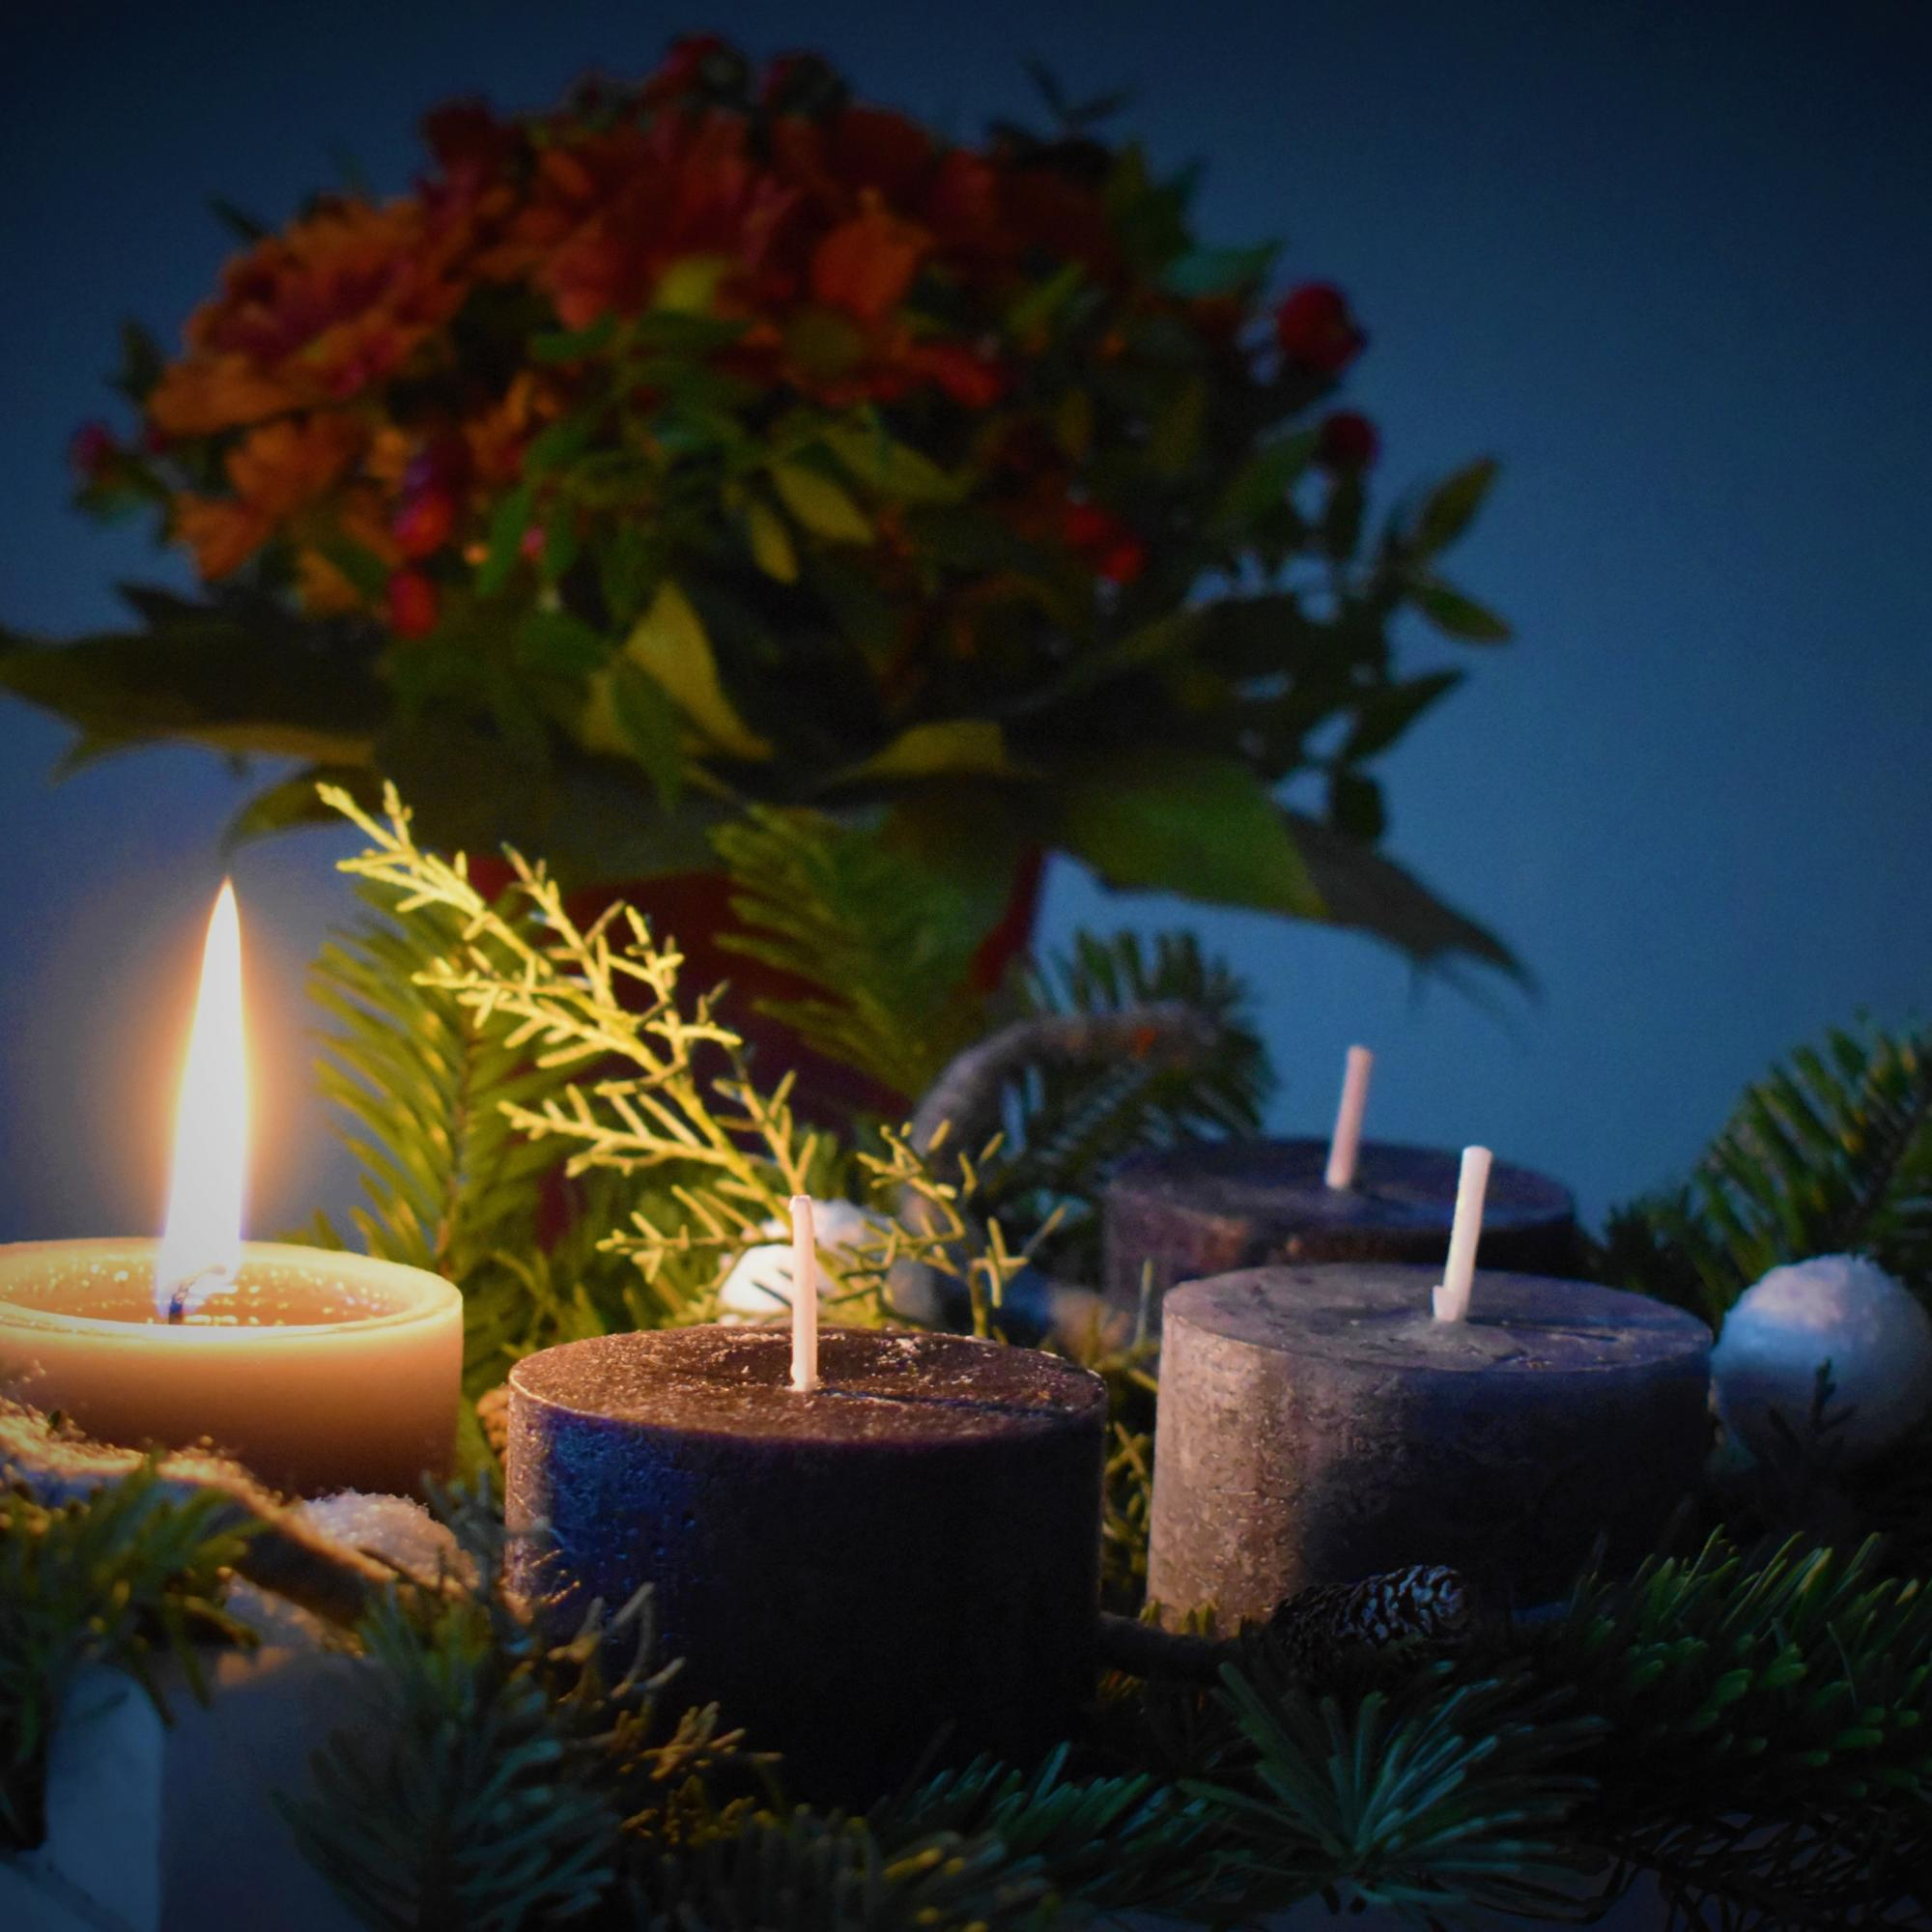 1. Advent (c) <span>Photo by <a href=https://unsplash.com/@waldemarbrandt67w?utm_source=unsplash&utm_medium=referral&utm_content=creditCopyText>Waldemar Brandt</a> on <a href=https://unsplash.com/s/photos/advent?utm_source=unsplash&utm_medium=referral&utm_content=creditCopyText>Unsplash</a></span>